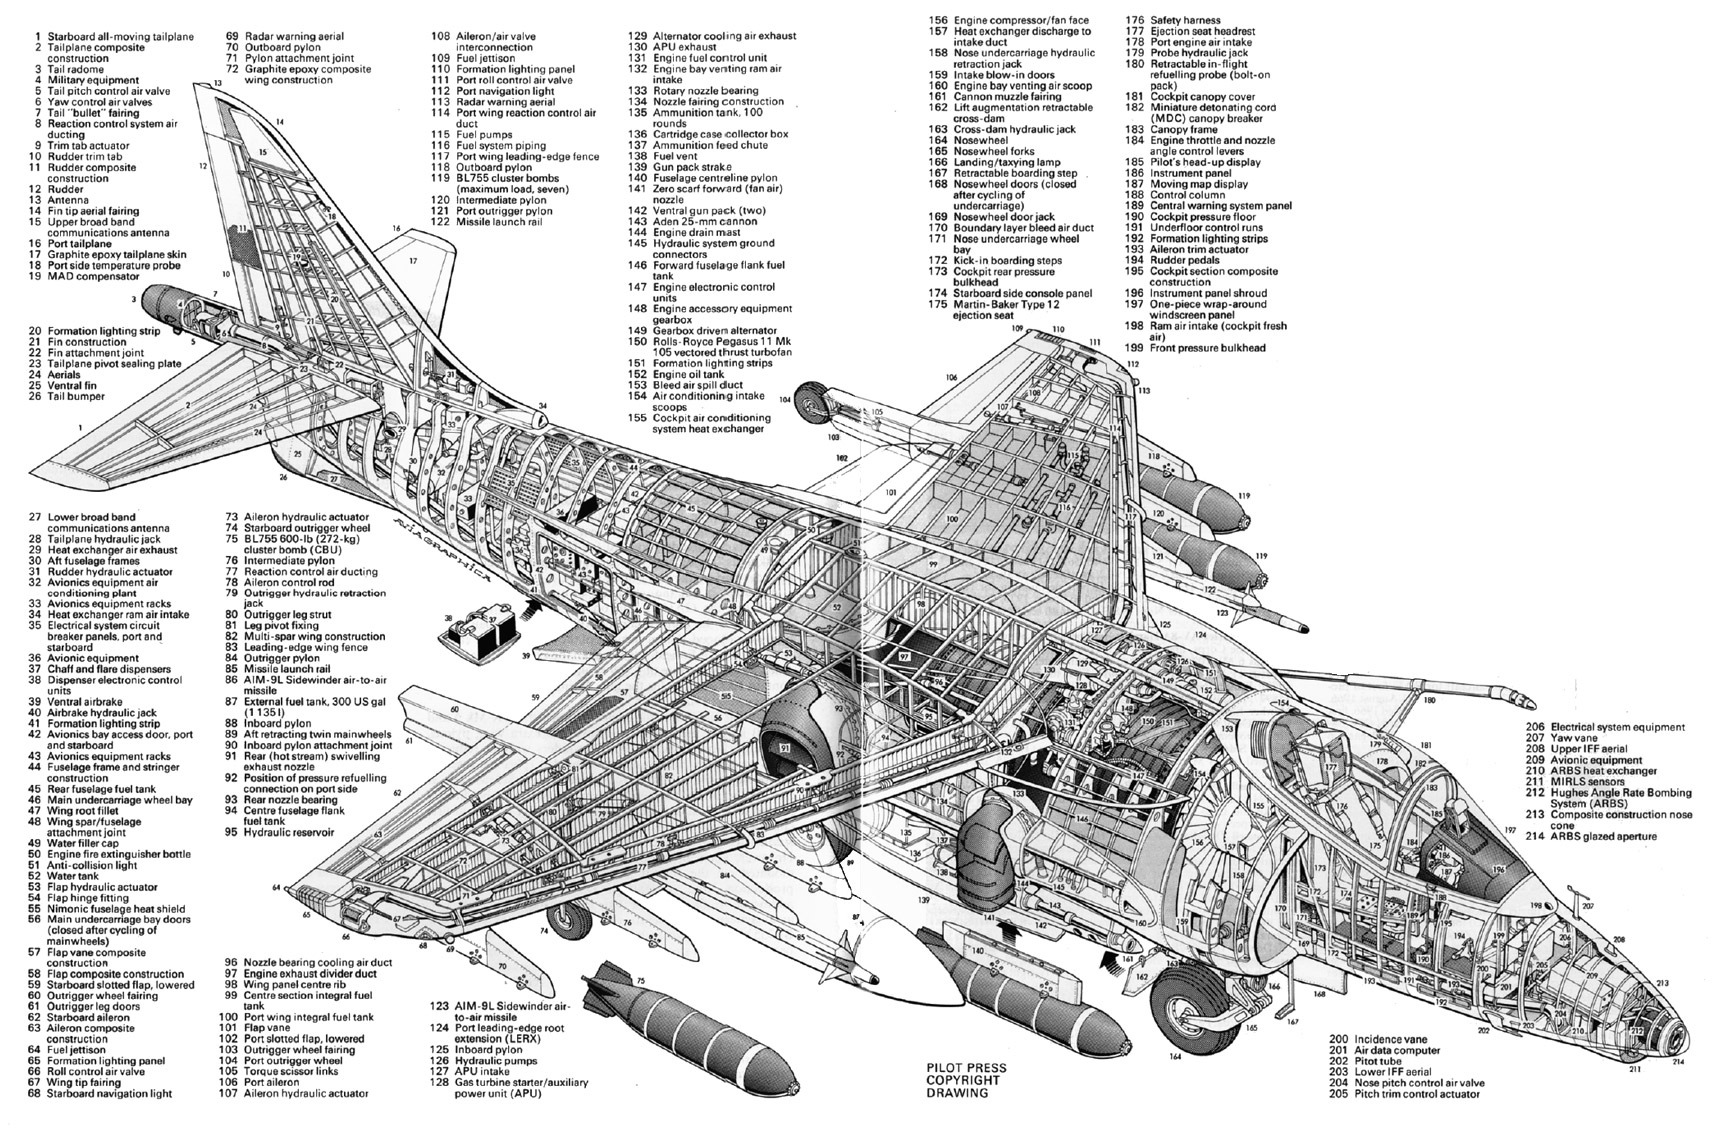 harrier engine diagram volkswagen jetta 2 0 engine diagram cold engine surya malam: mcdonnell douglas av-8b harrier ii fighter ...